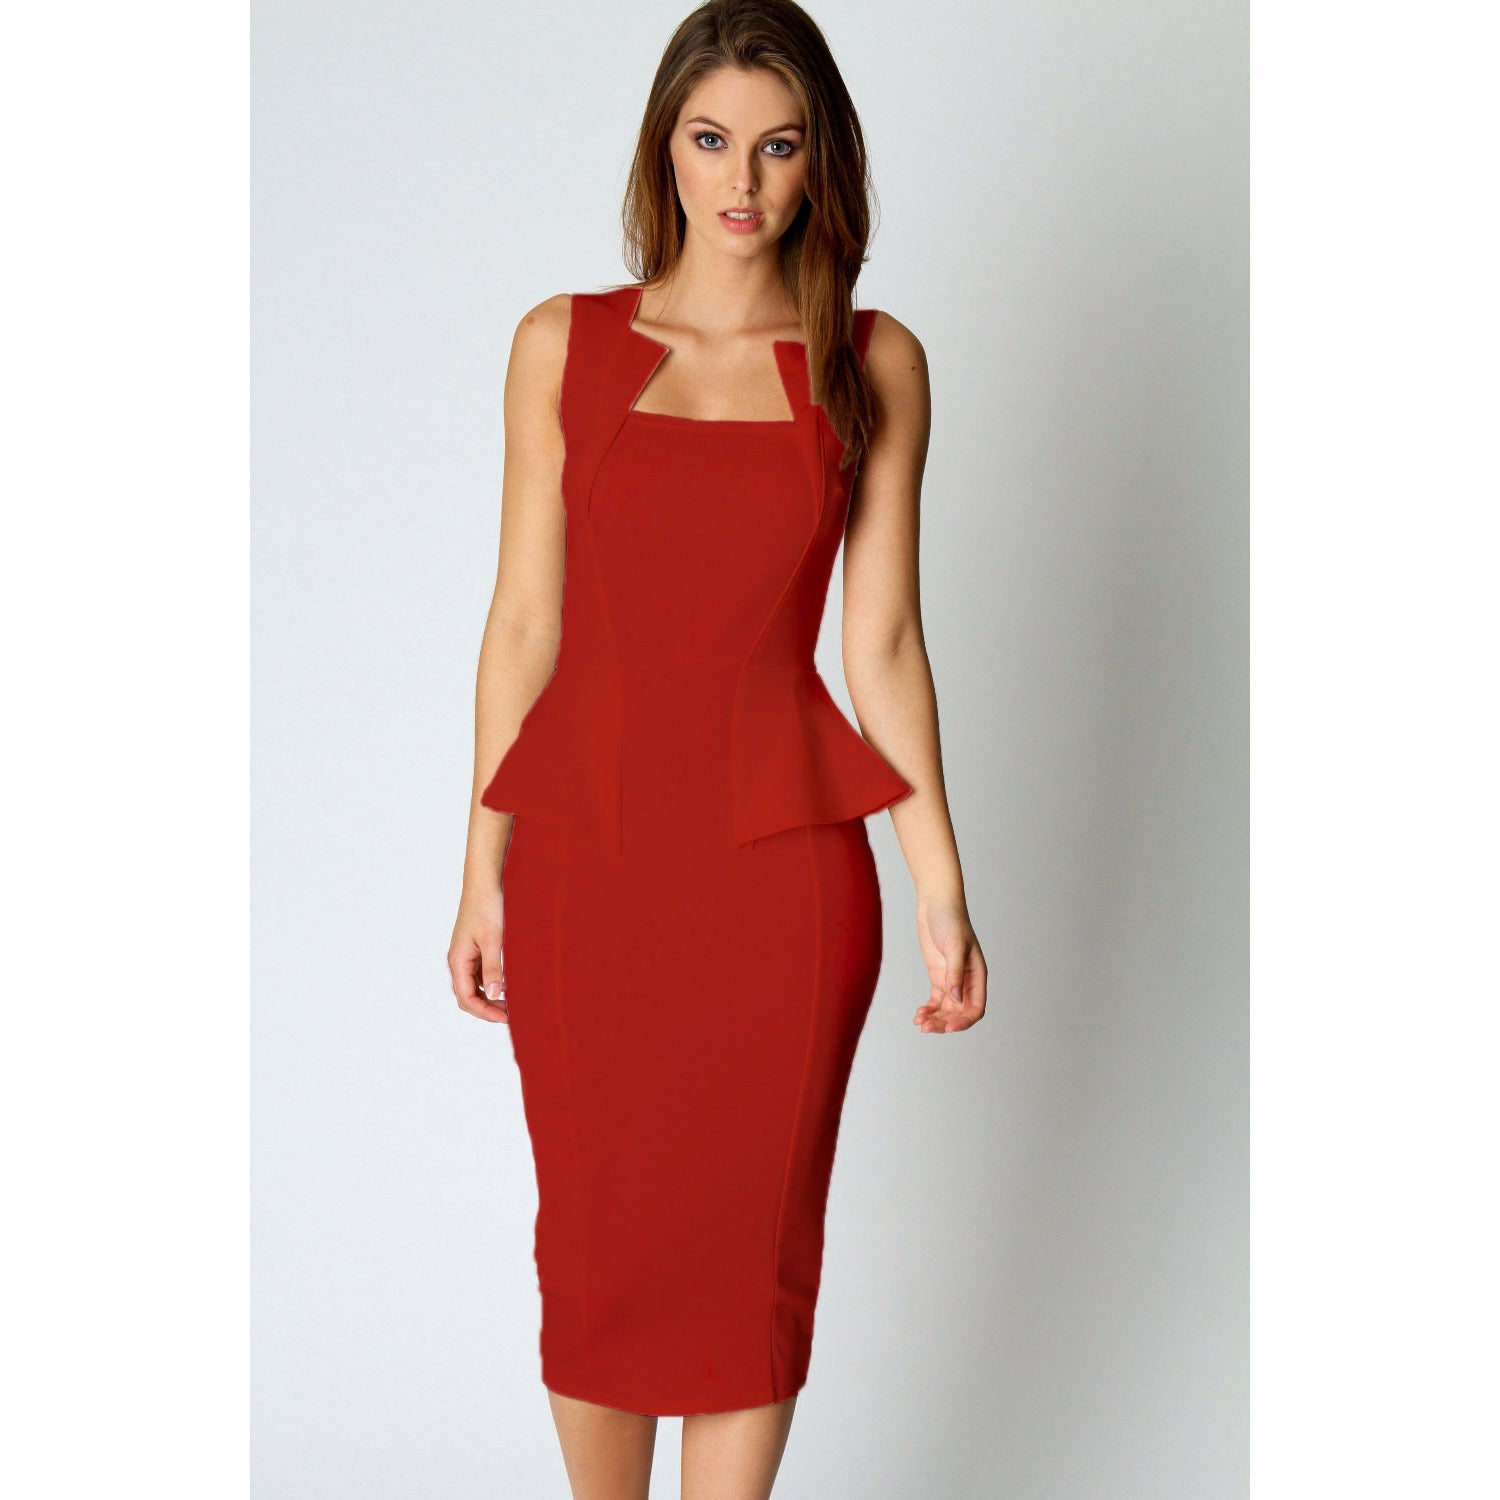 Red Sleeveless Midi Dress LAVELIQ - LAVELIQ - 1